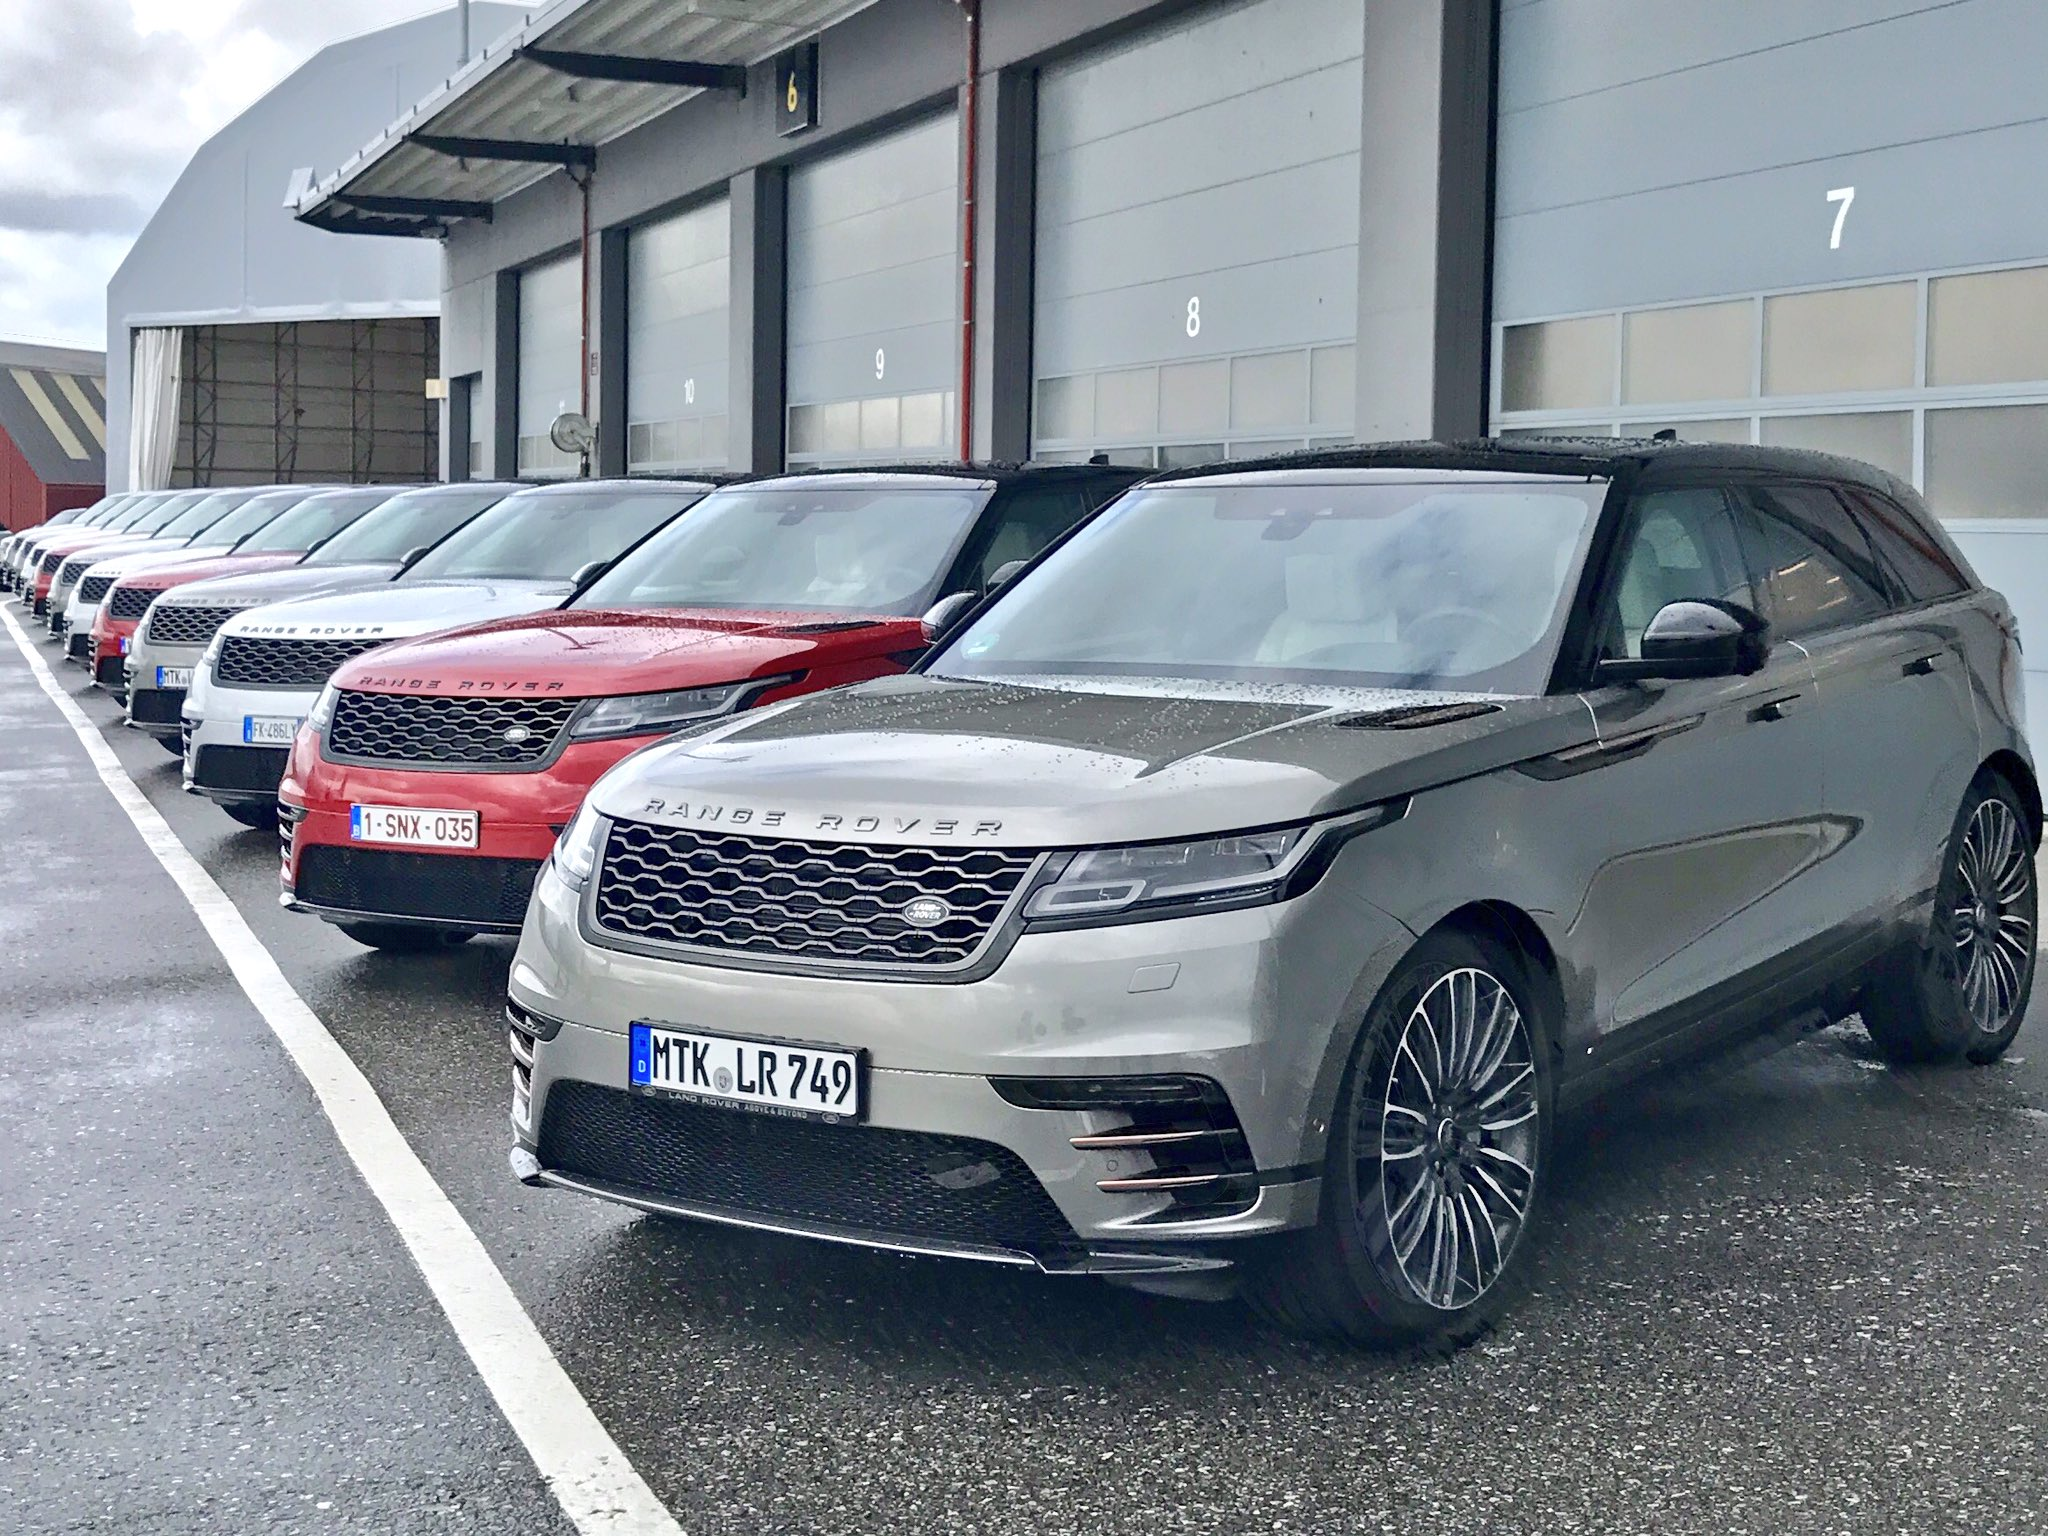 Today is a Velar sort of day https://t.co/AoBMSOEtnu